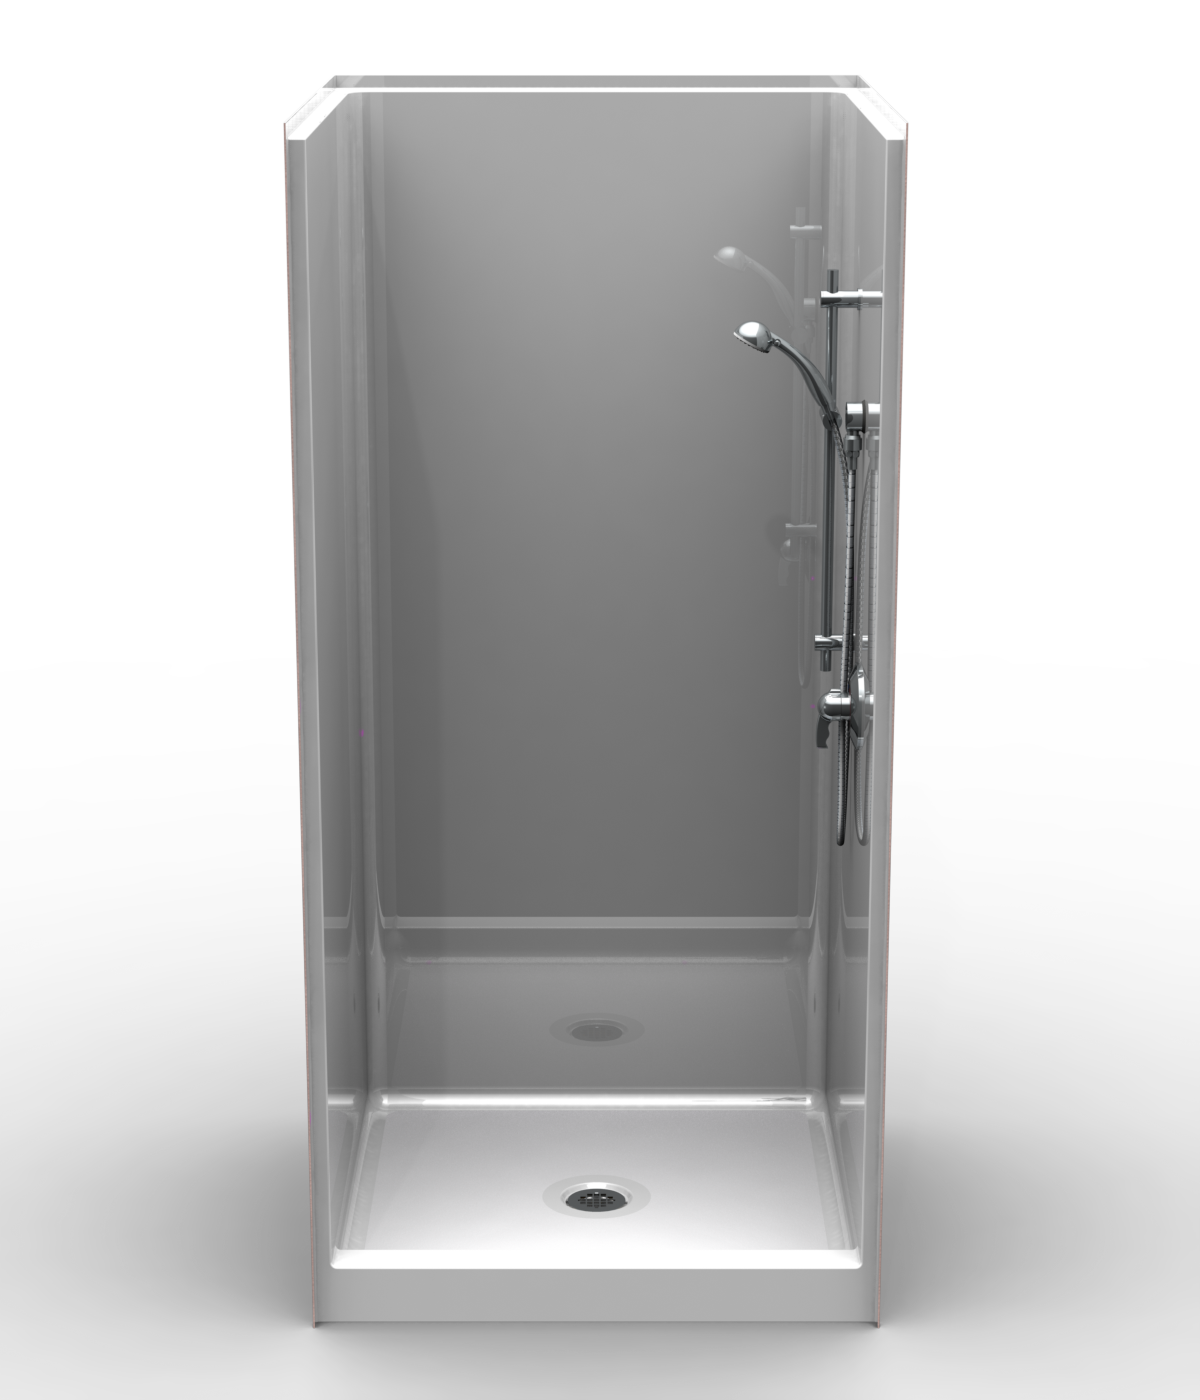 Remodeler Shower One Piece 38x38 4 Curb Smooth Wall Look